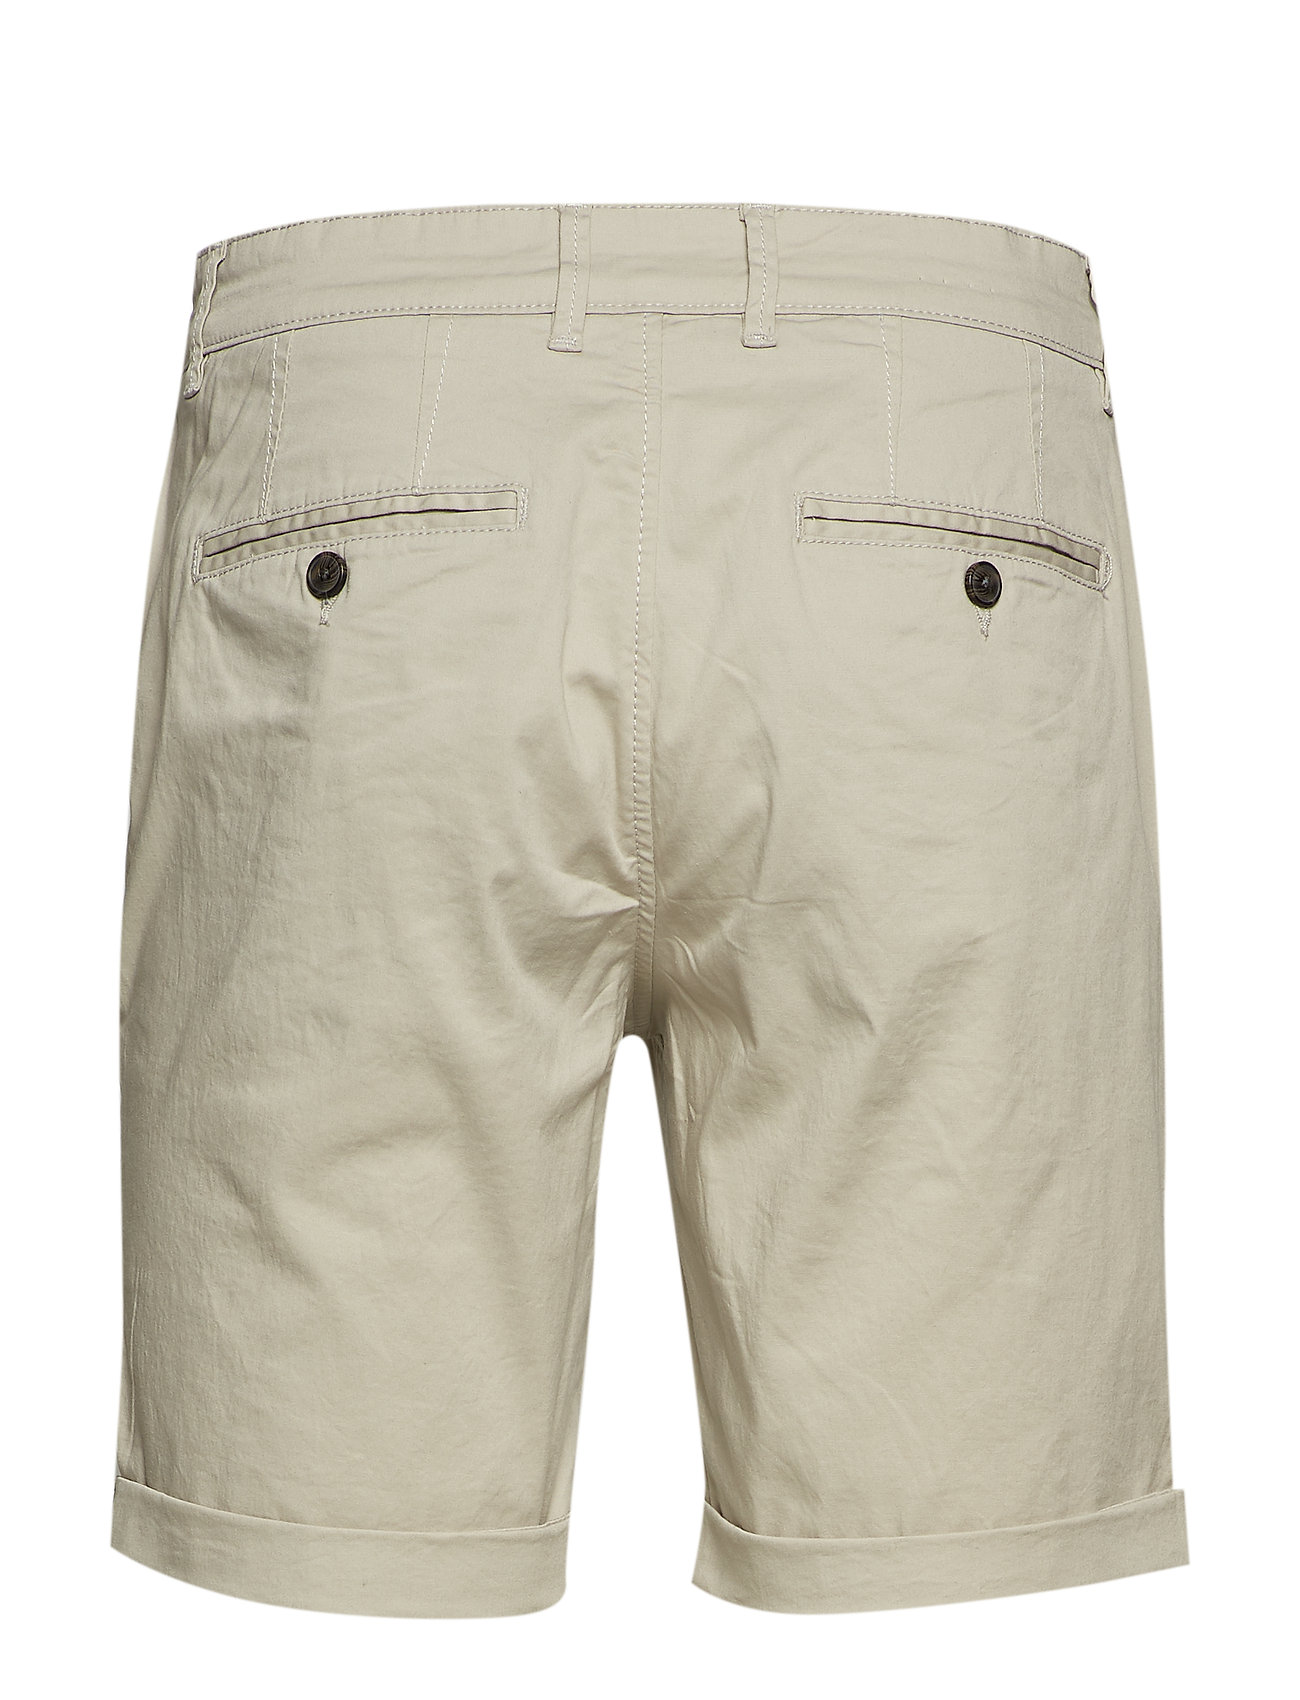 Selected Homme - SLHSTRAIGHT-PARIS SHORTS W NOOS - chino's shorts - moonstruck - 1